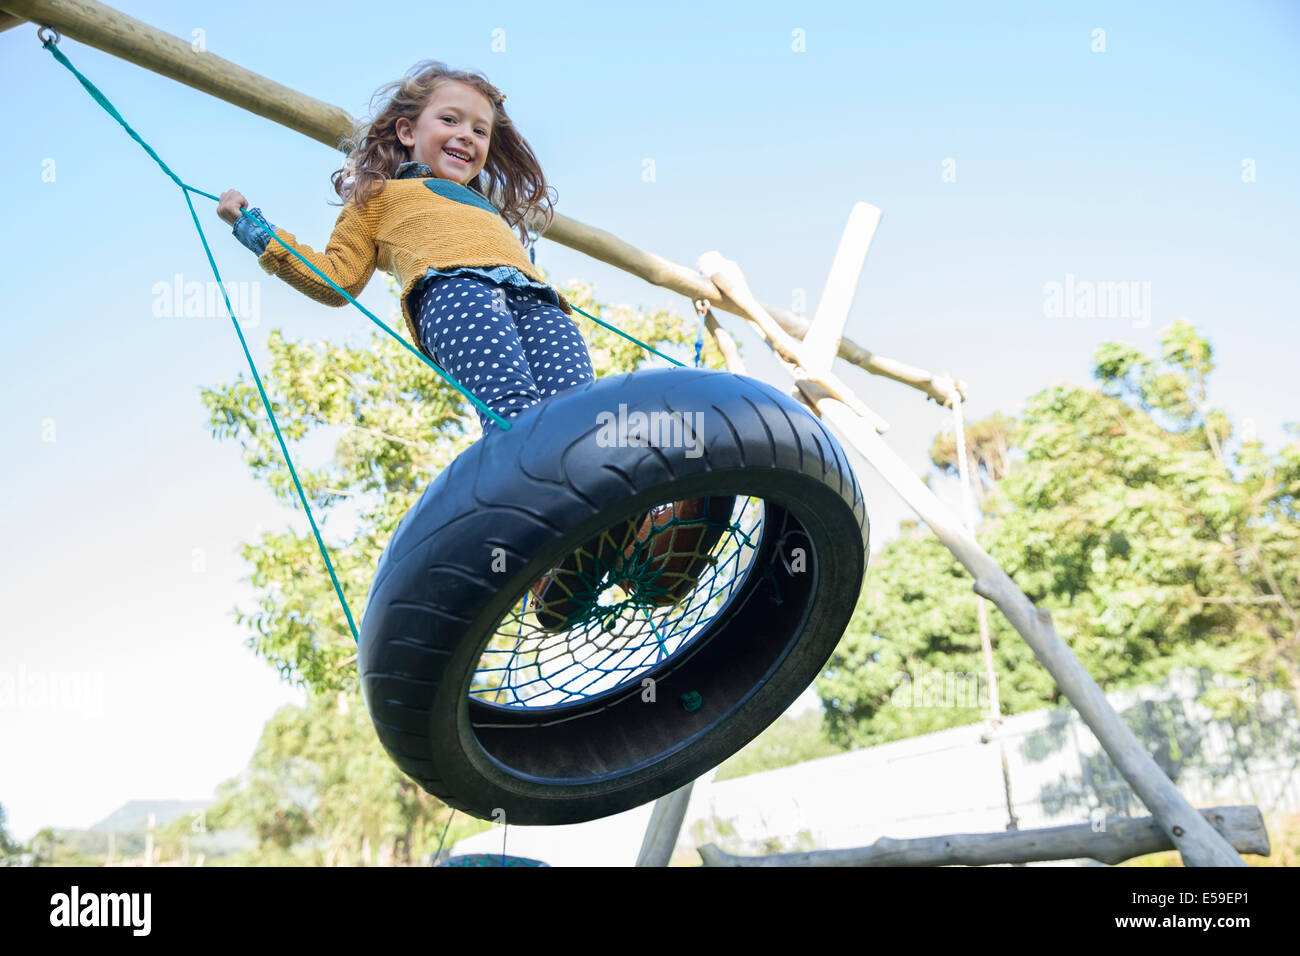 Girl playing on tire swing - Stock Image